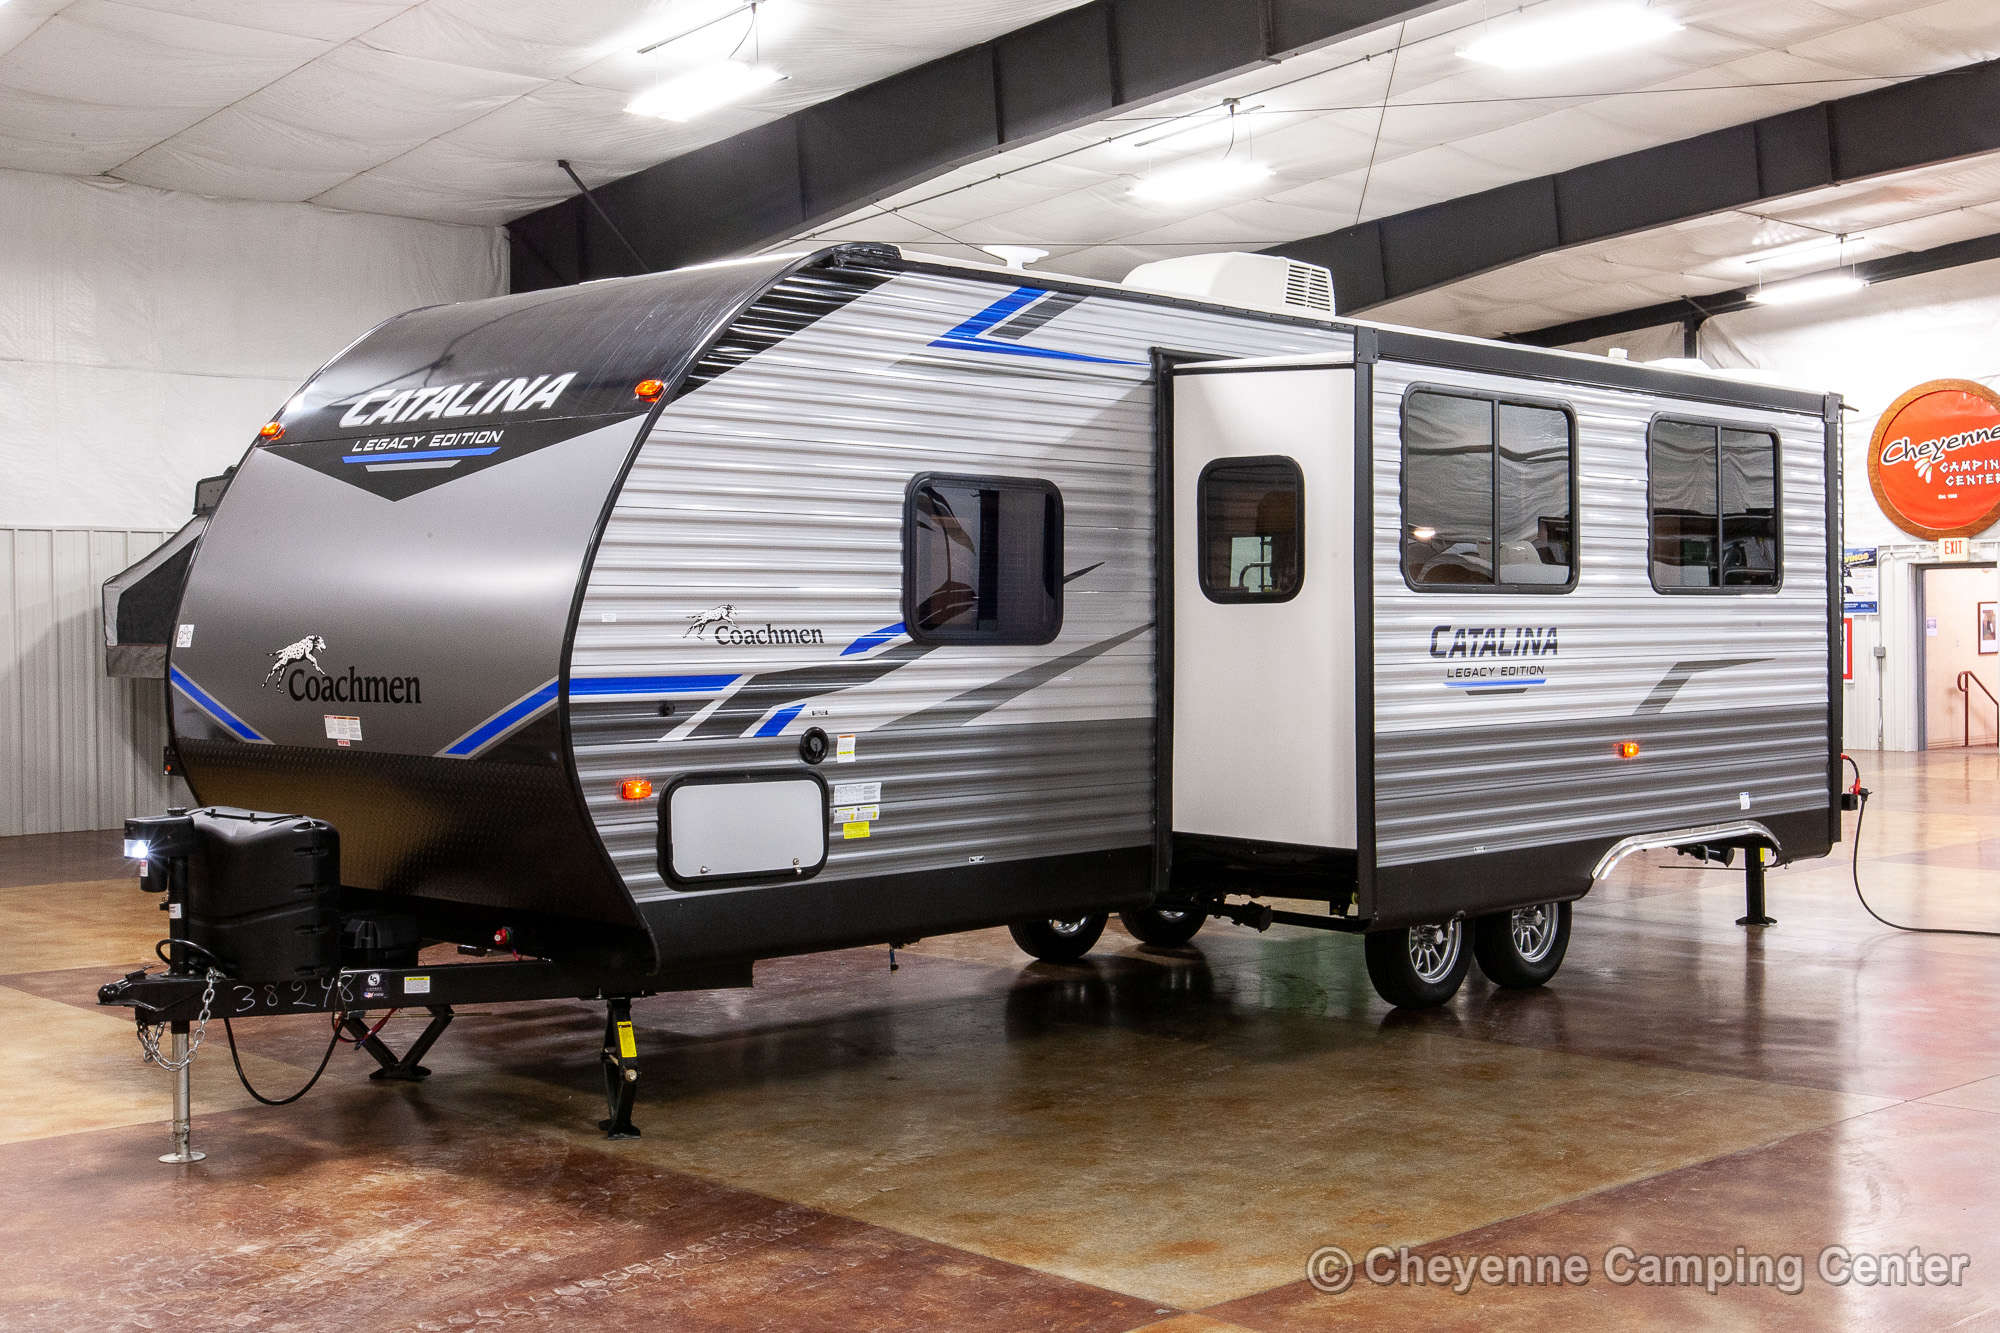 2021 Coachmen Catalina Legacy Edition 263BHSCK Bunkhouse Travel Trailer Exterior Image